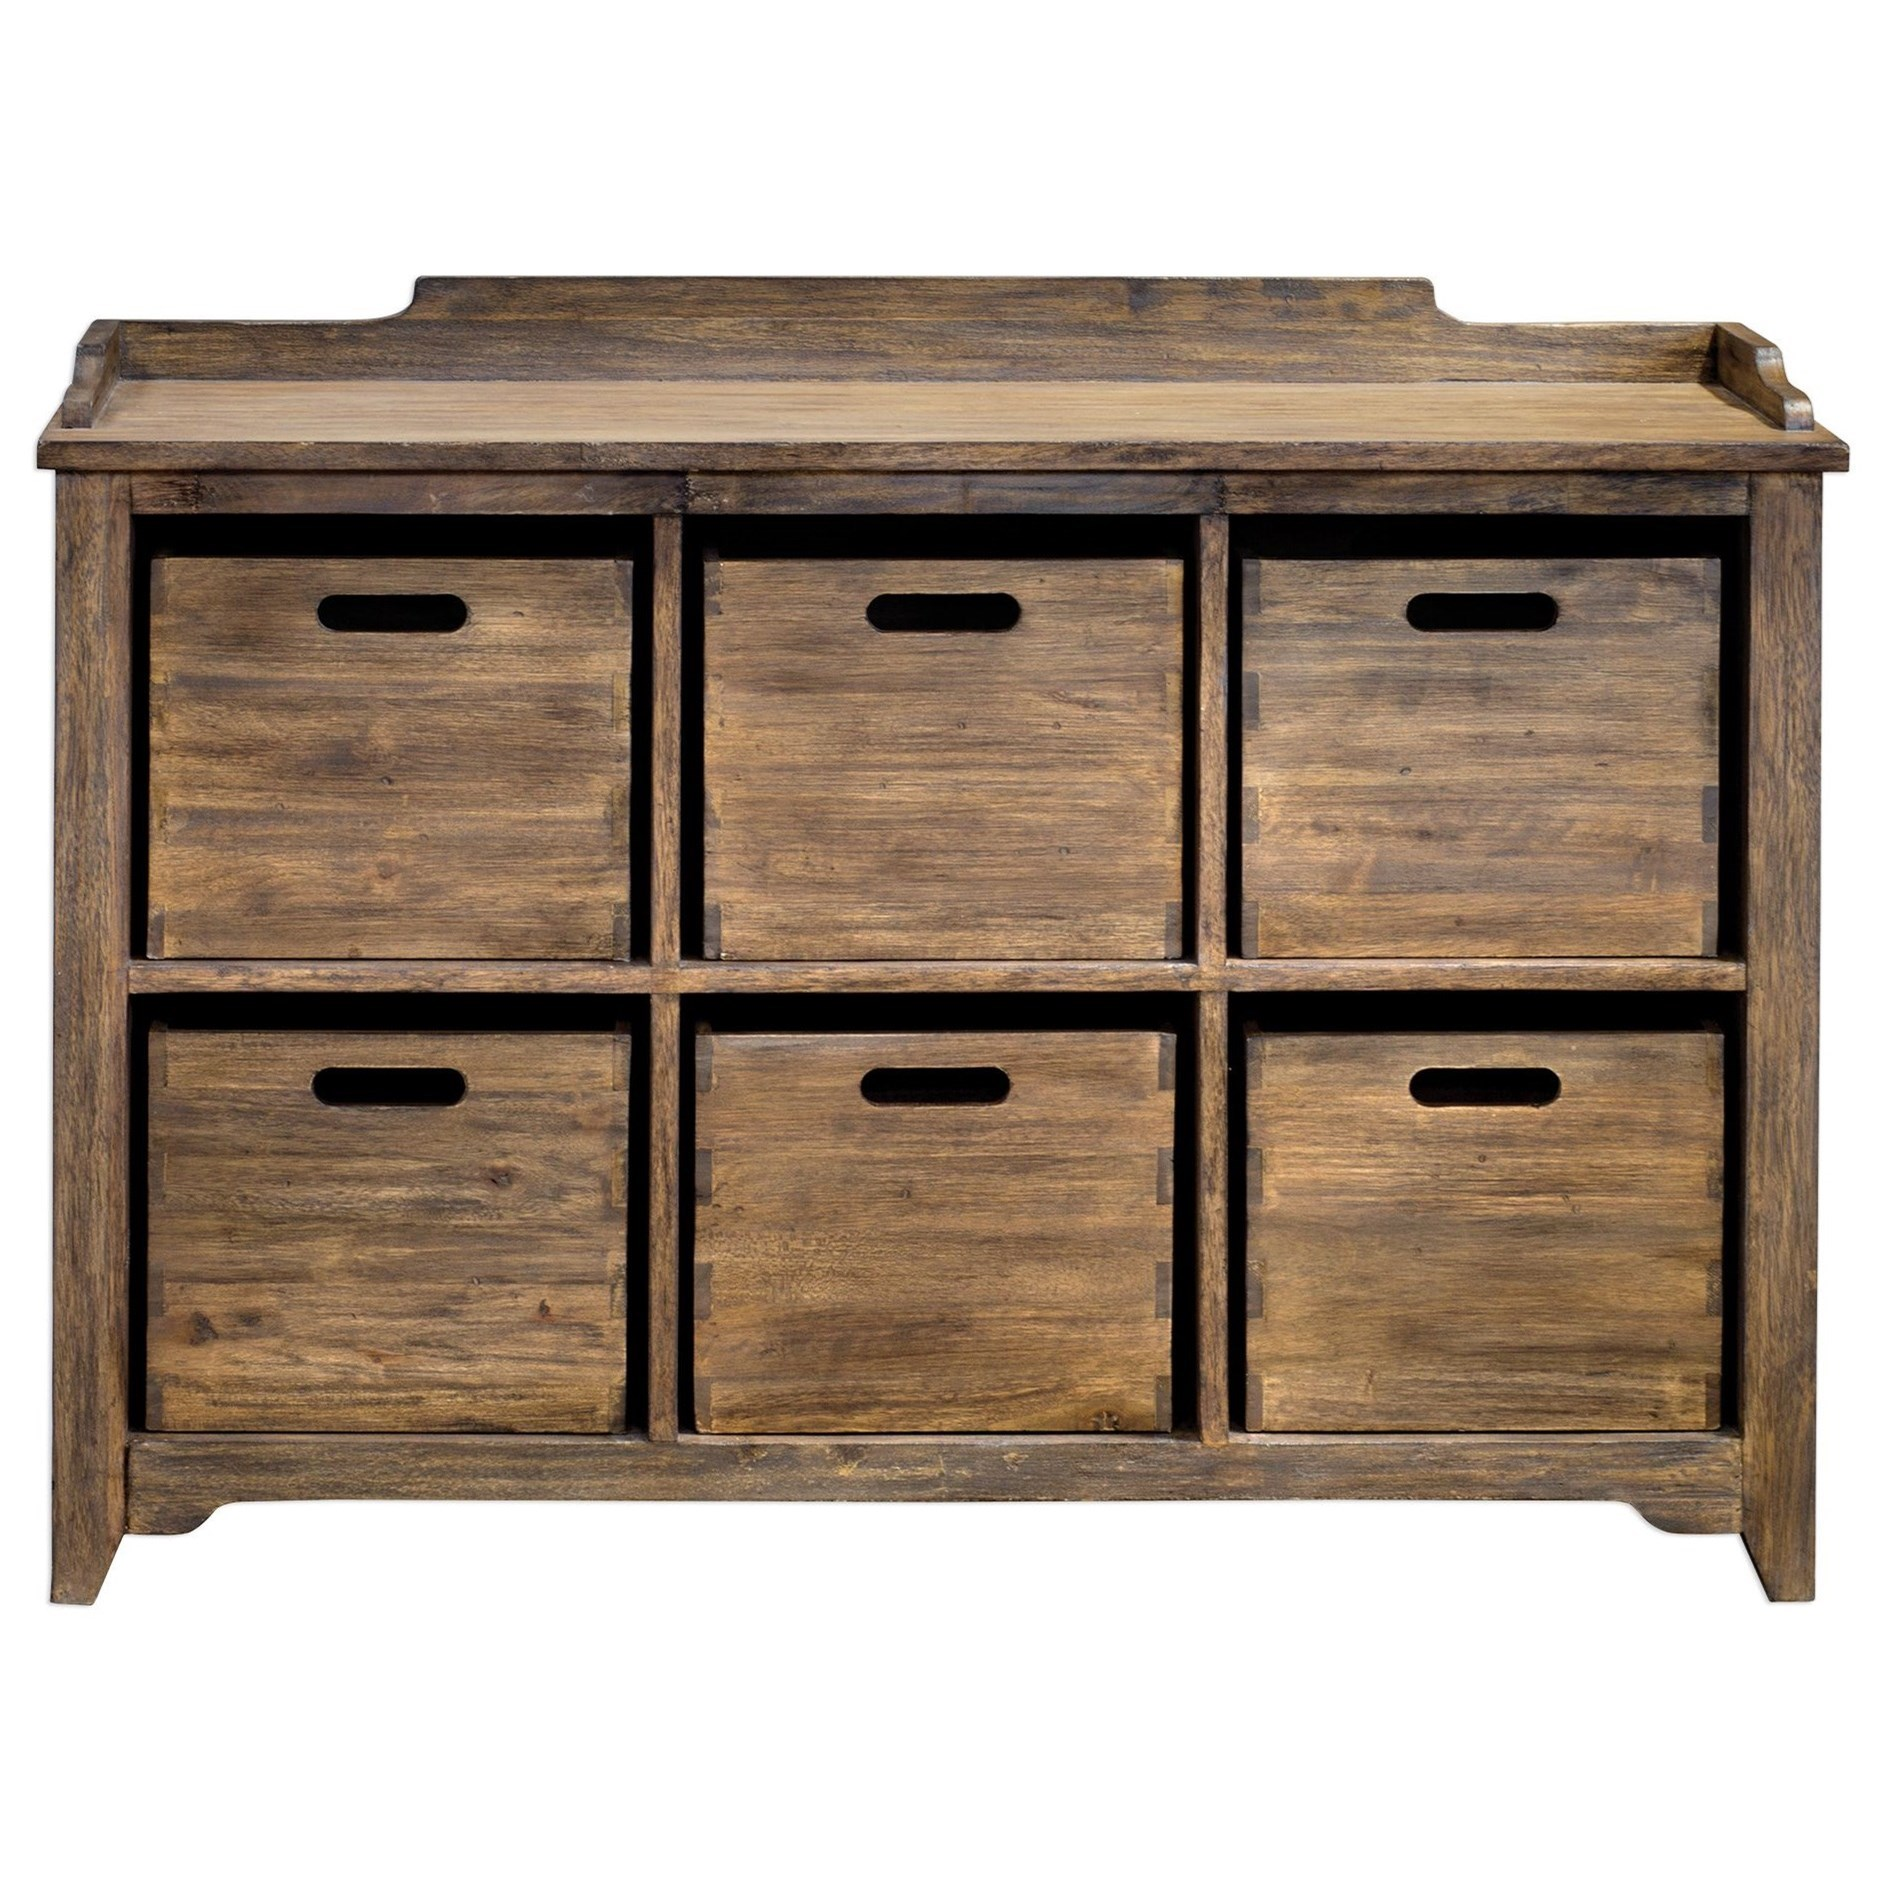 Accent Furniture - Chests Ardusin Driftwood Hobby Cupboard by Uttermost at Mueller Furniture